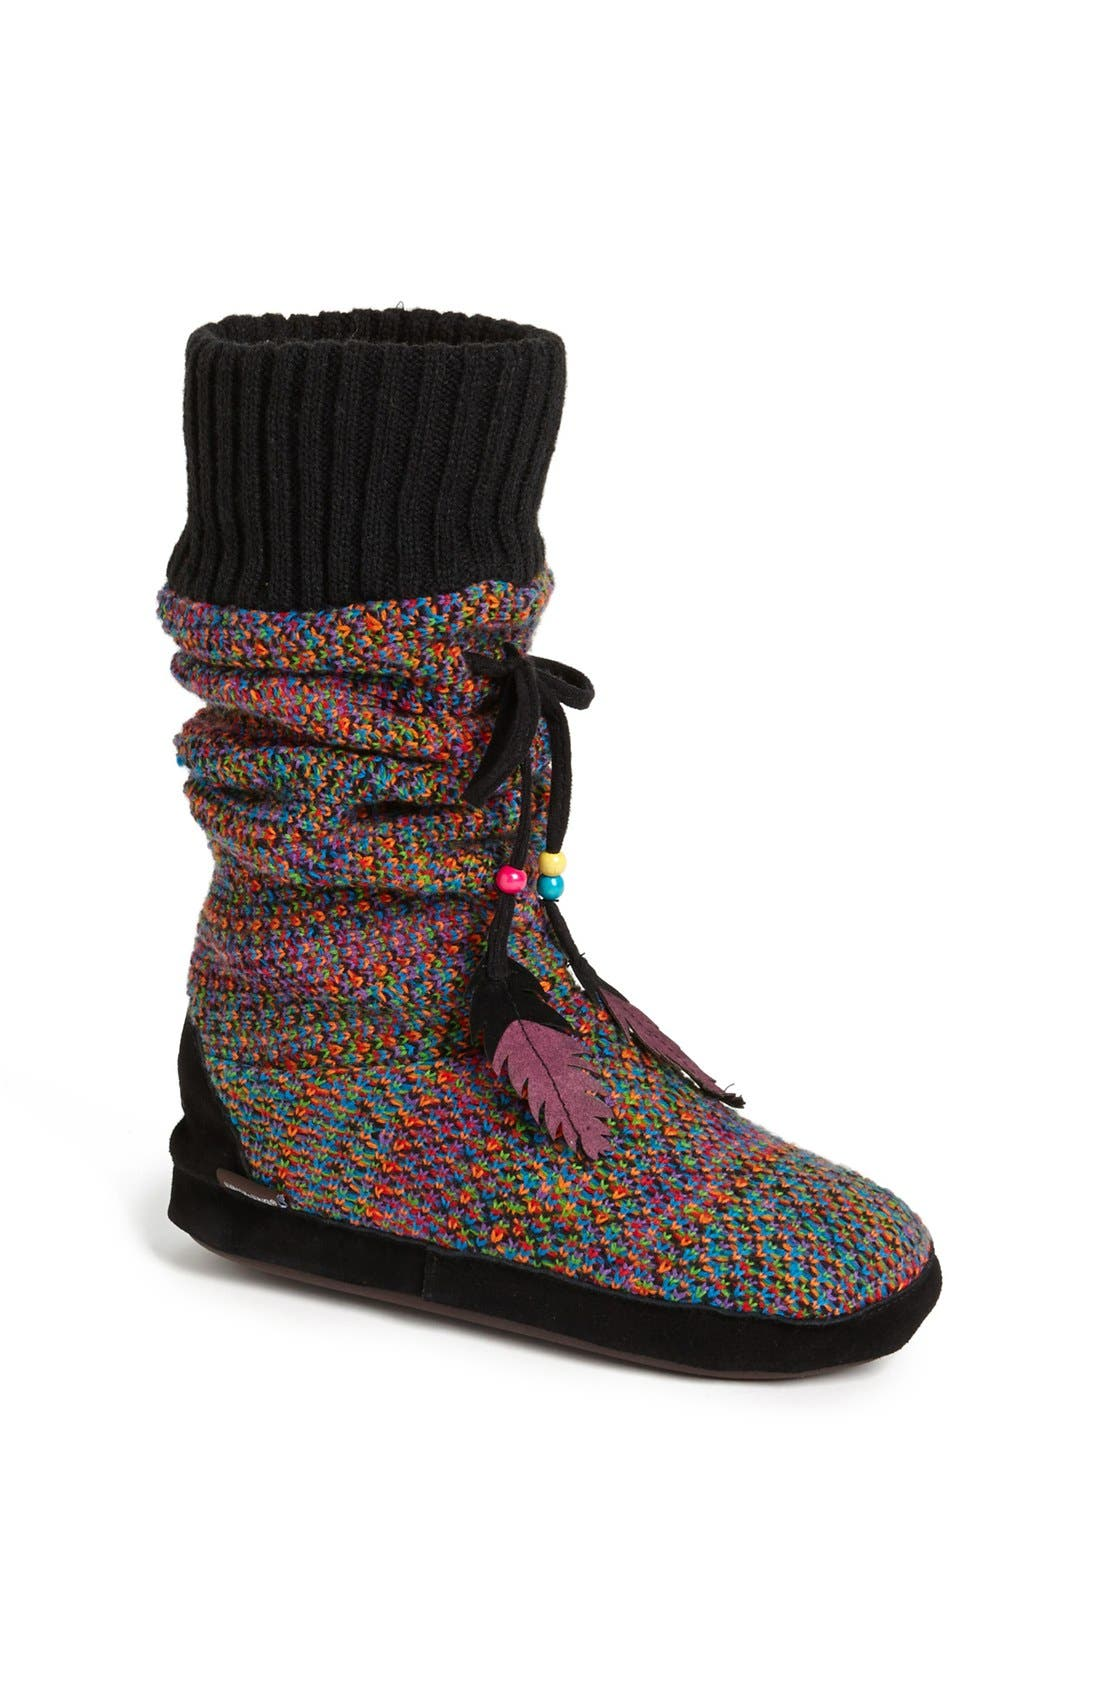 Main Image - MUK LUKS 'Angie' Tall Slipper